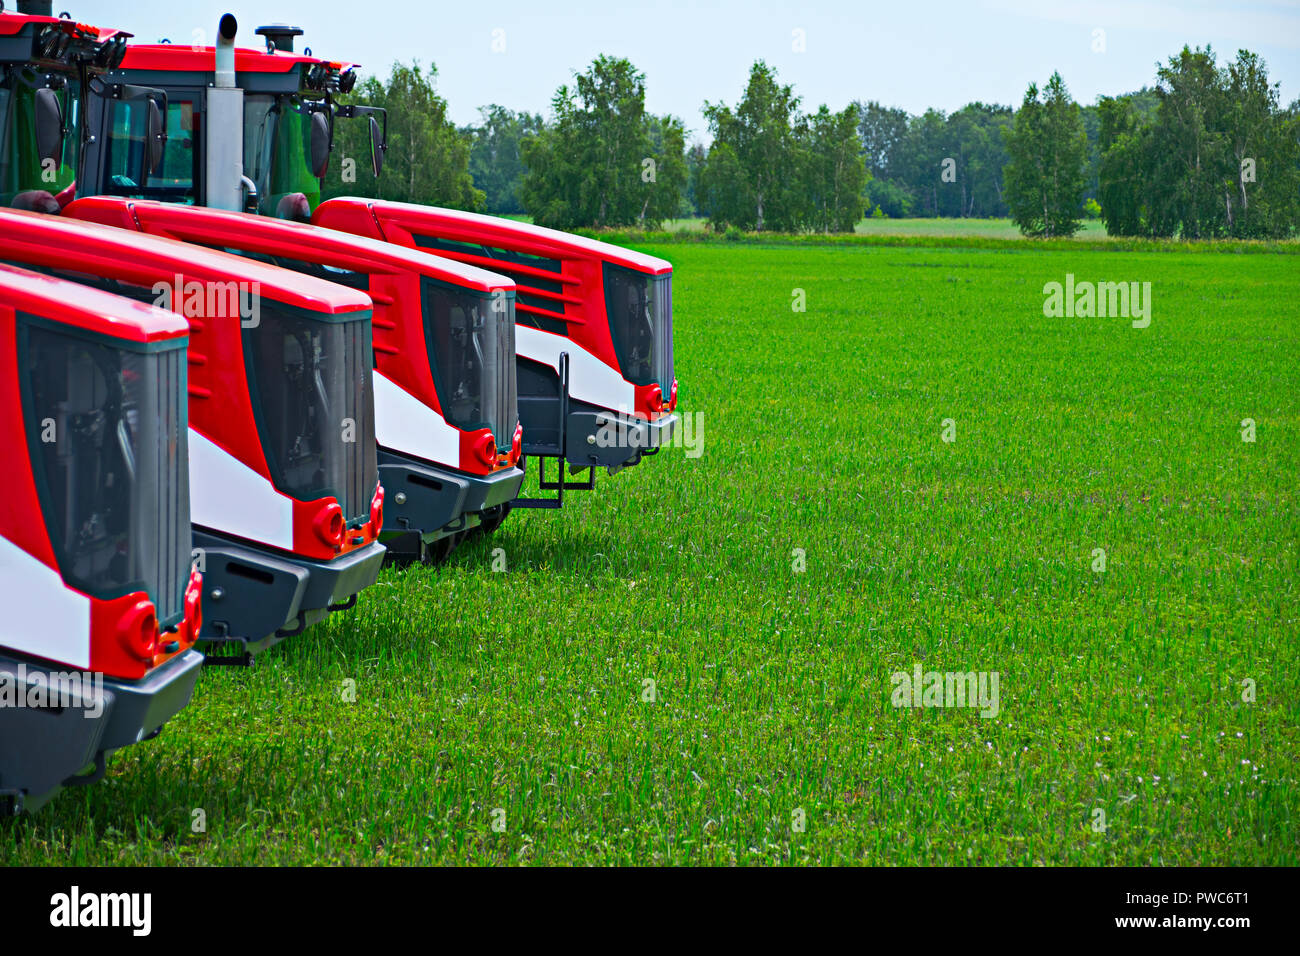 Agricultural machinery ready to cultivate the fields - Stock Image